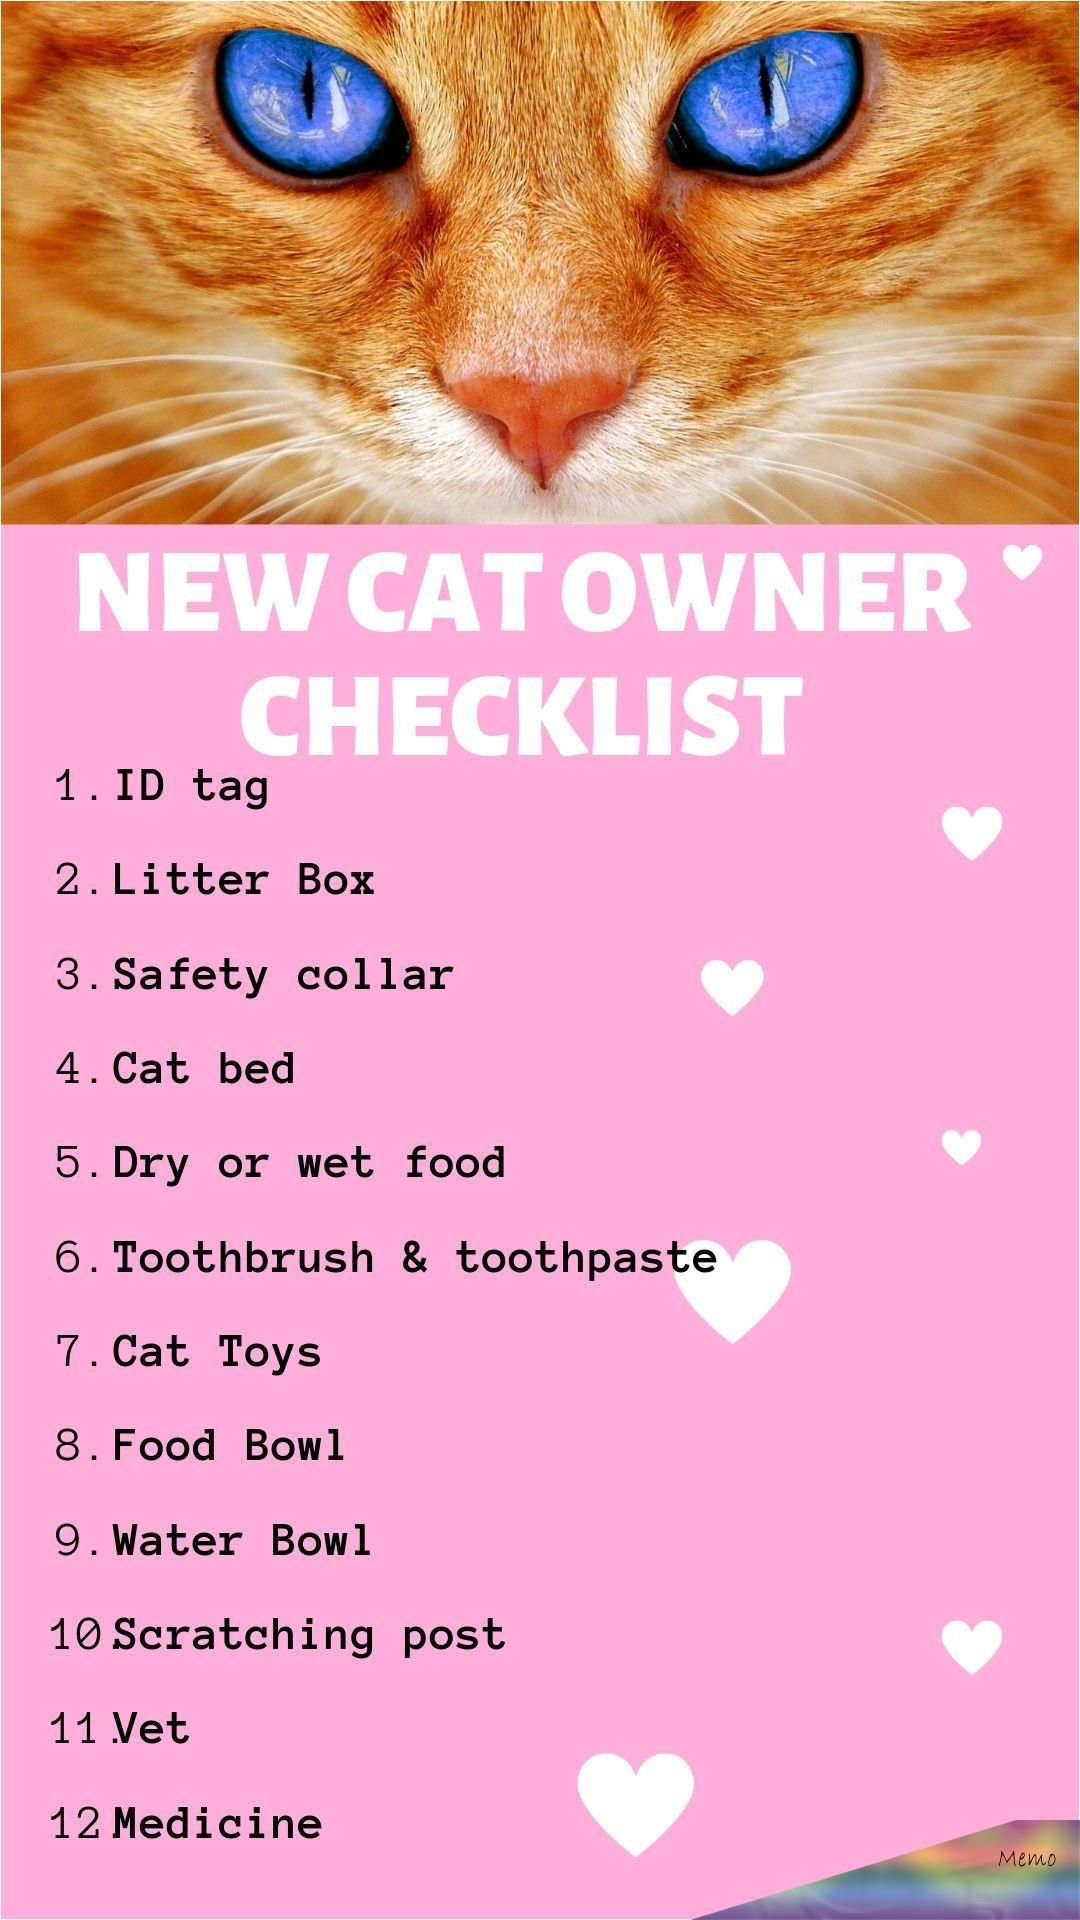 Pin By Naomipleijter On Cat Facts In 2020 Kitten Care Cat Owners Cat Essentials